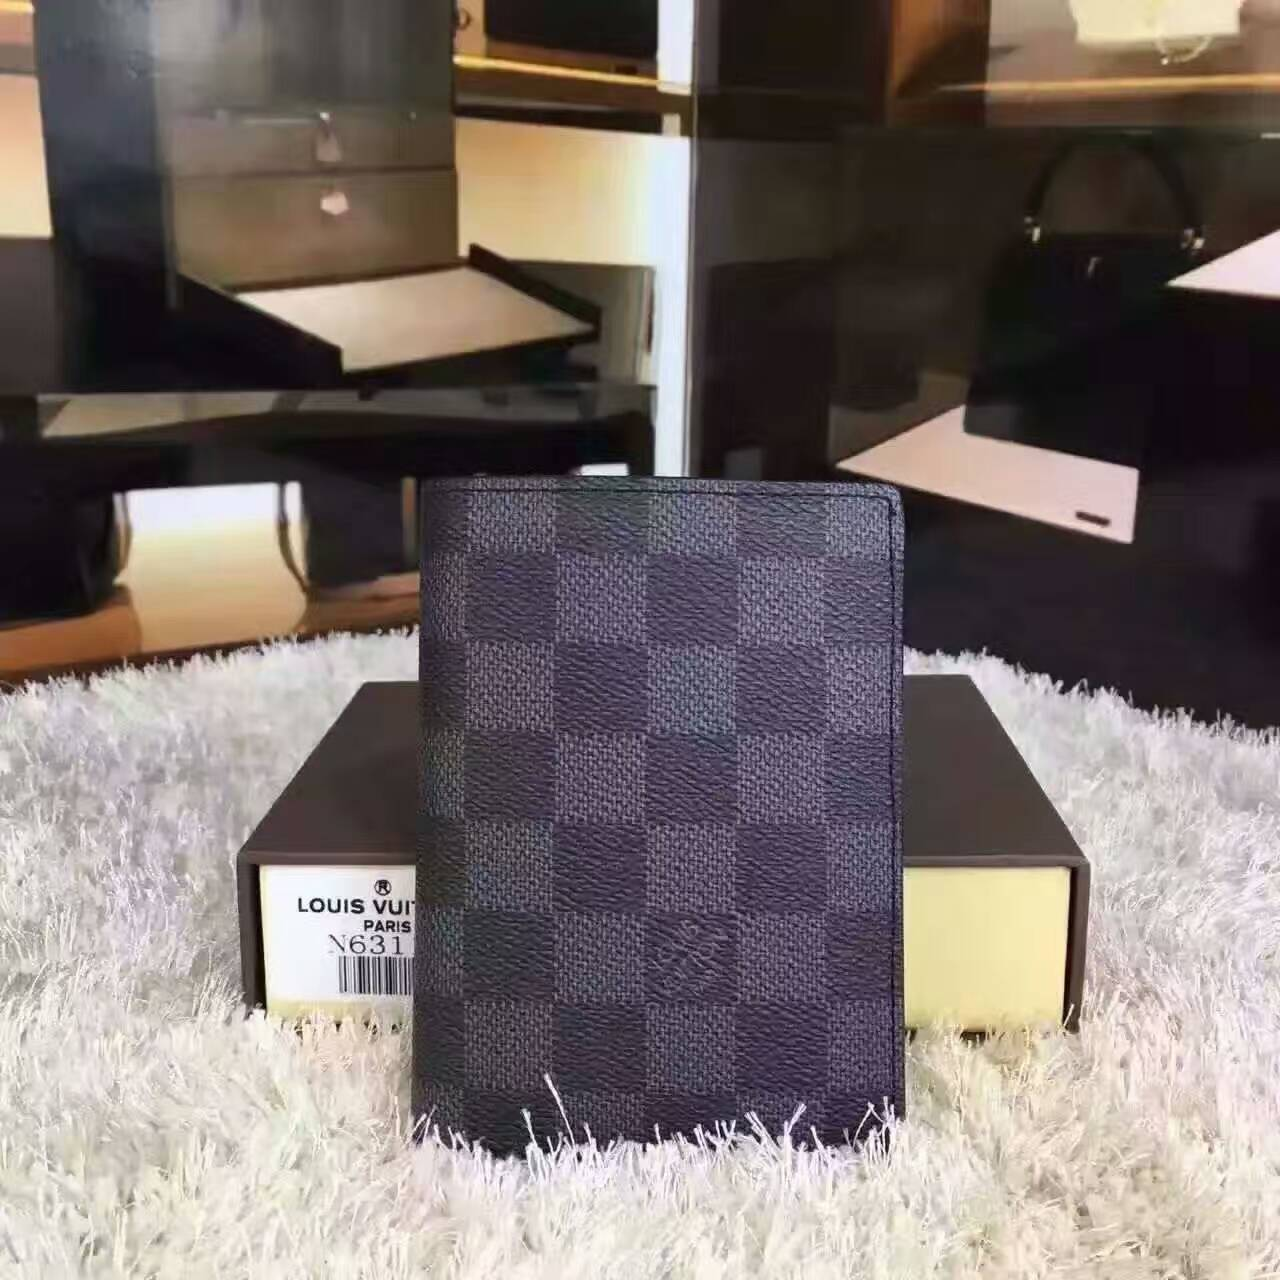 Louis vuitton damier graphite james wallet-N63117-VNLV172